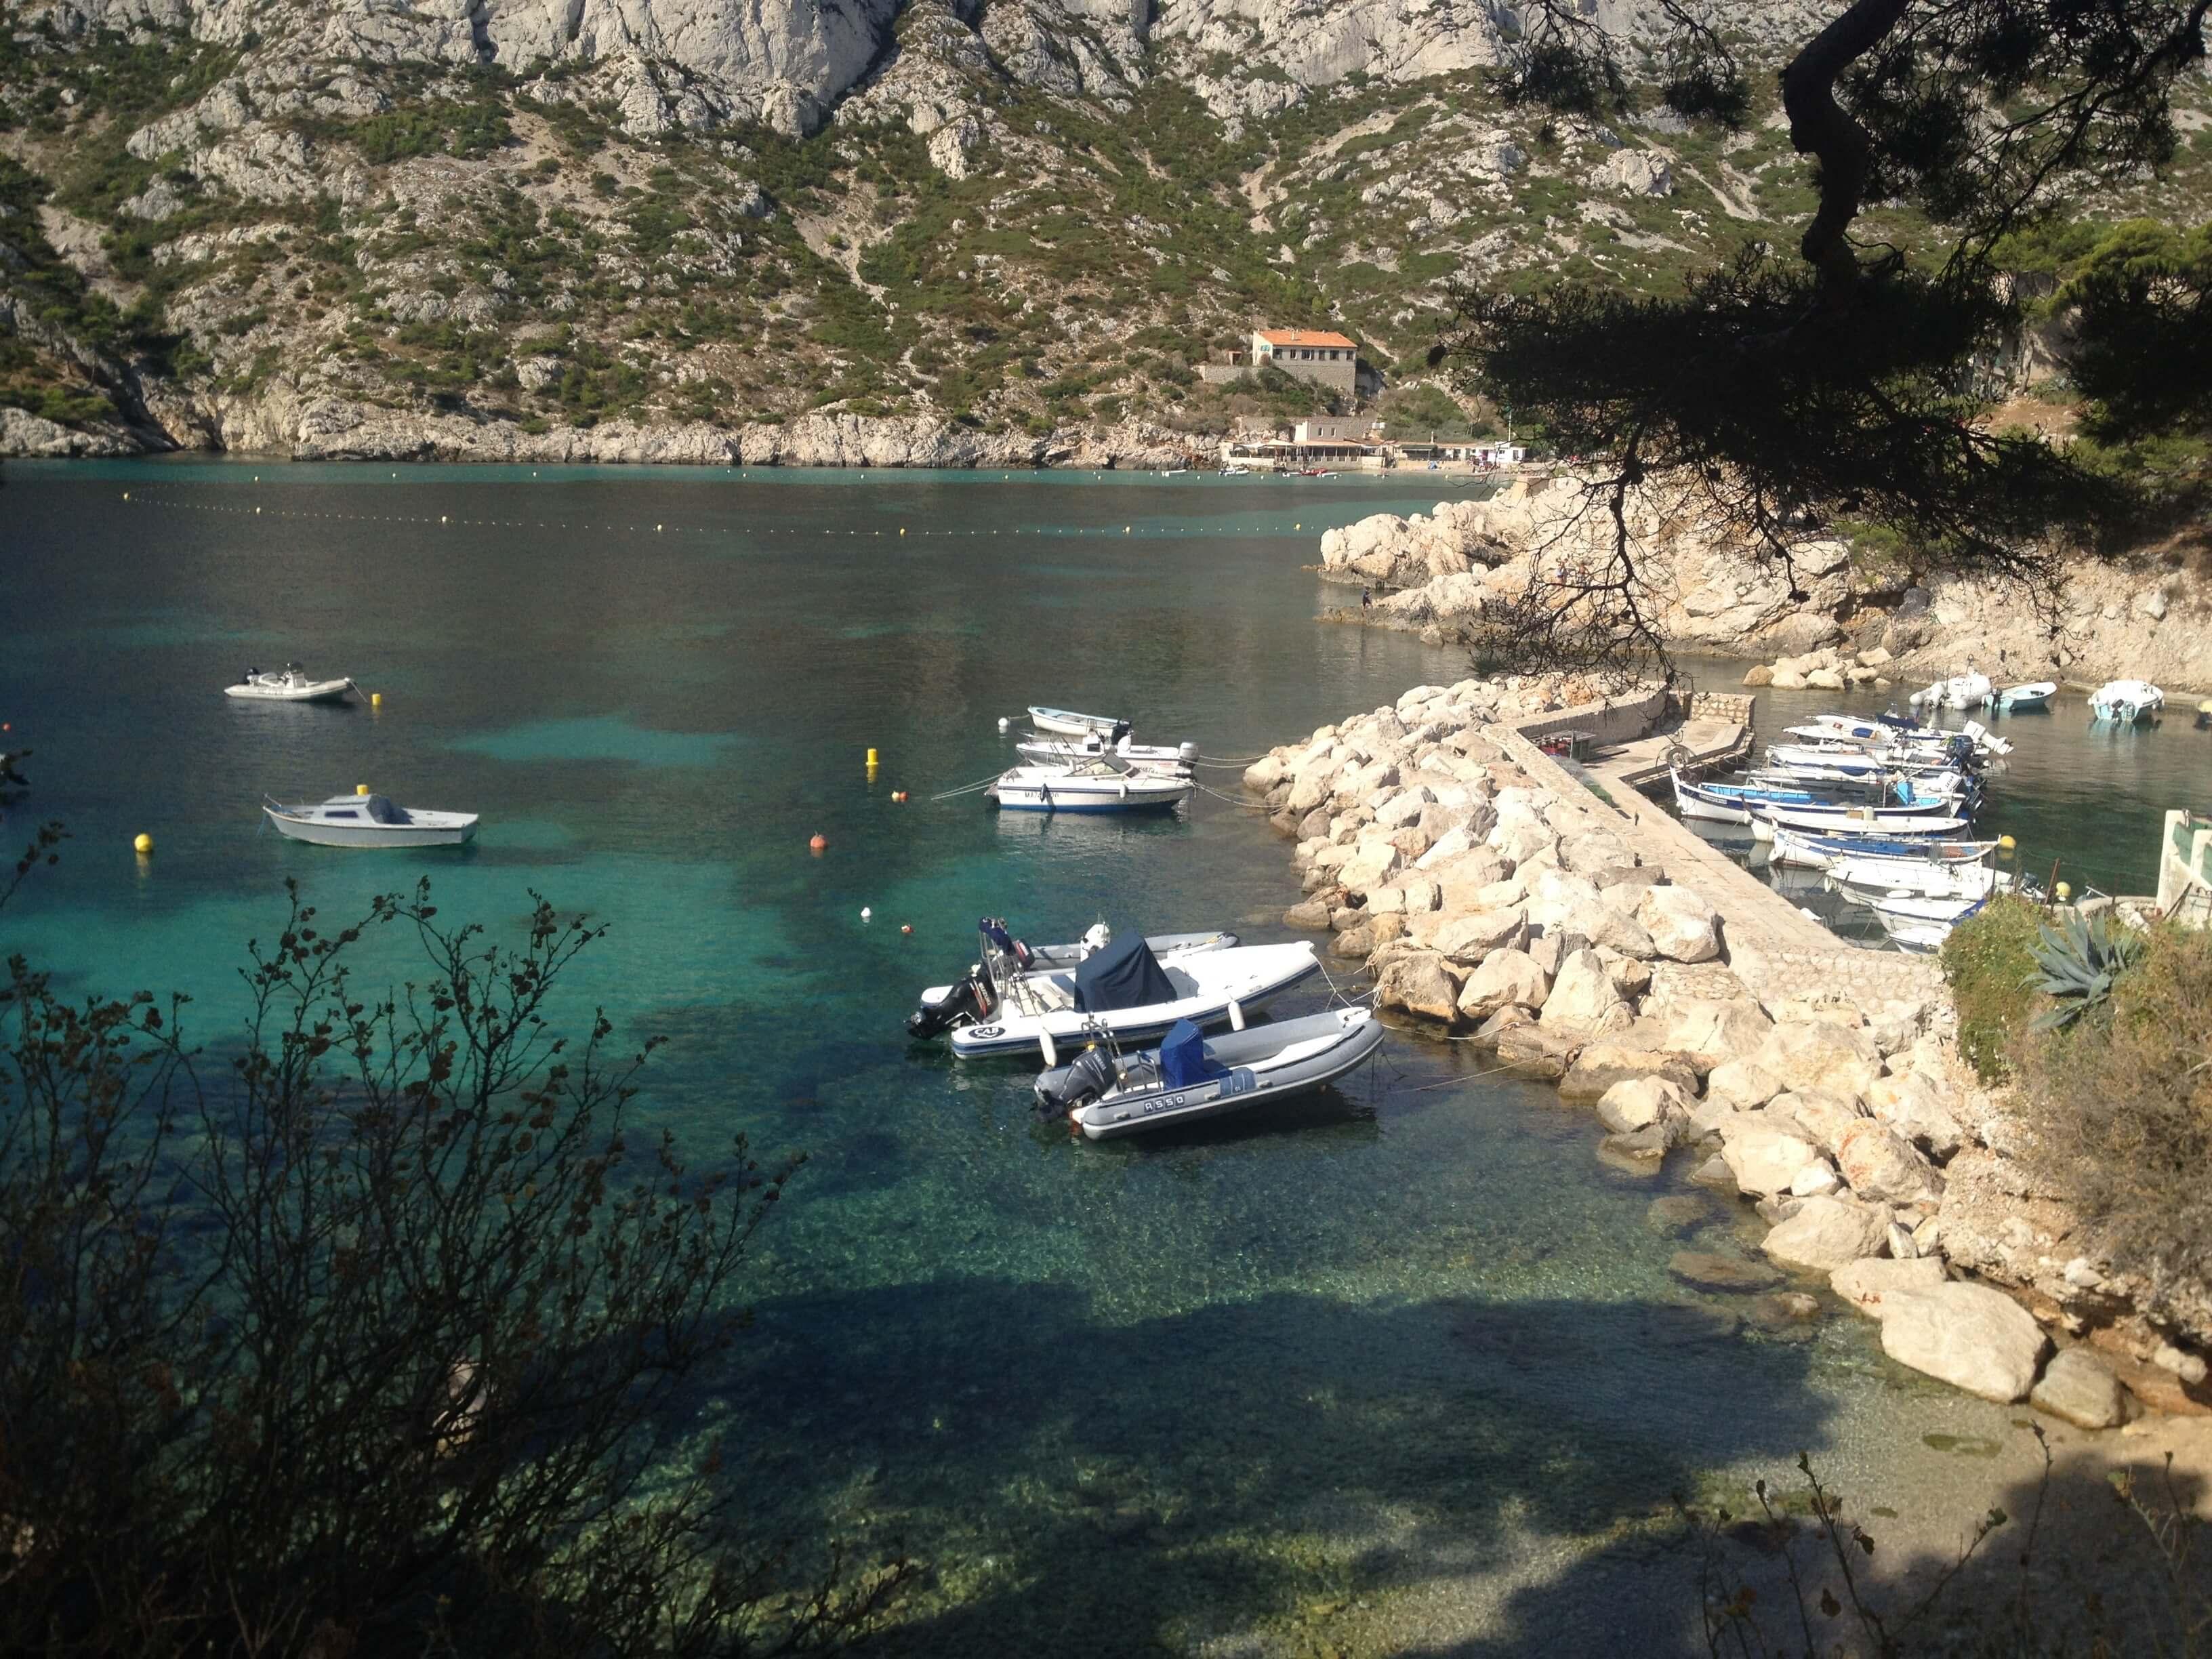 Boats parked in the cove at Calanque de Sormiou.